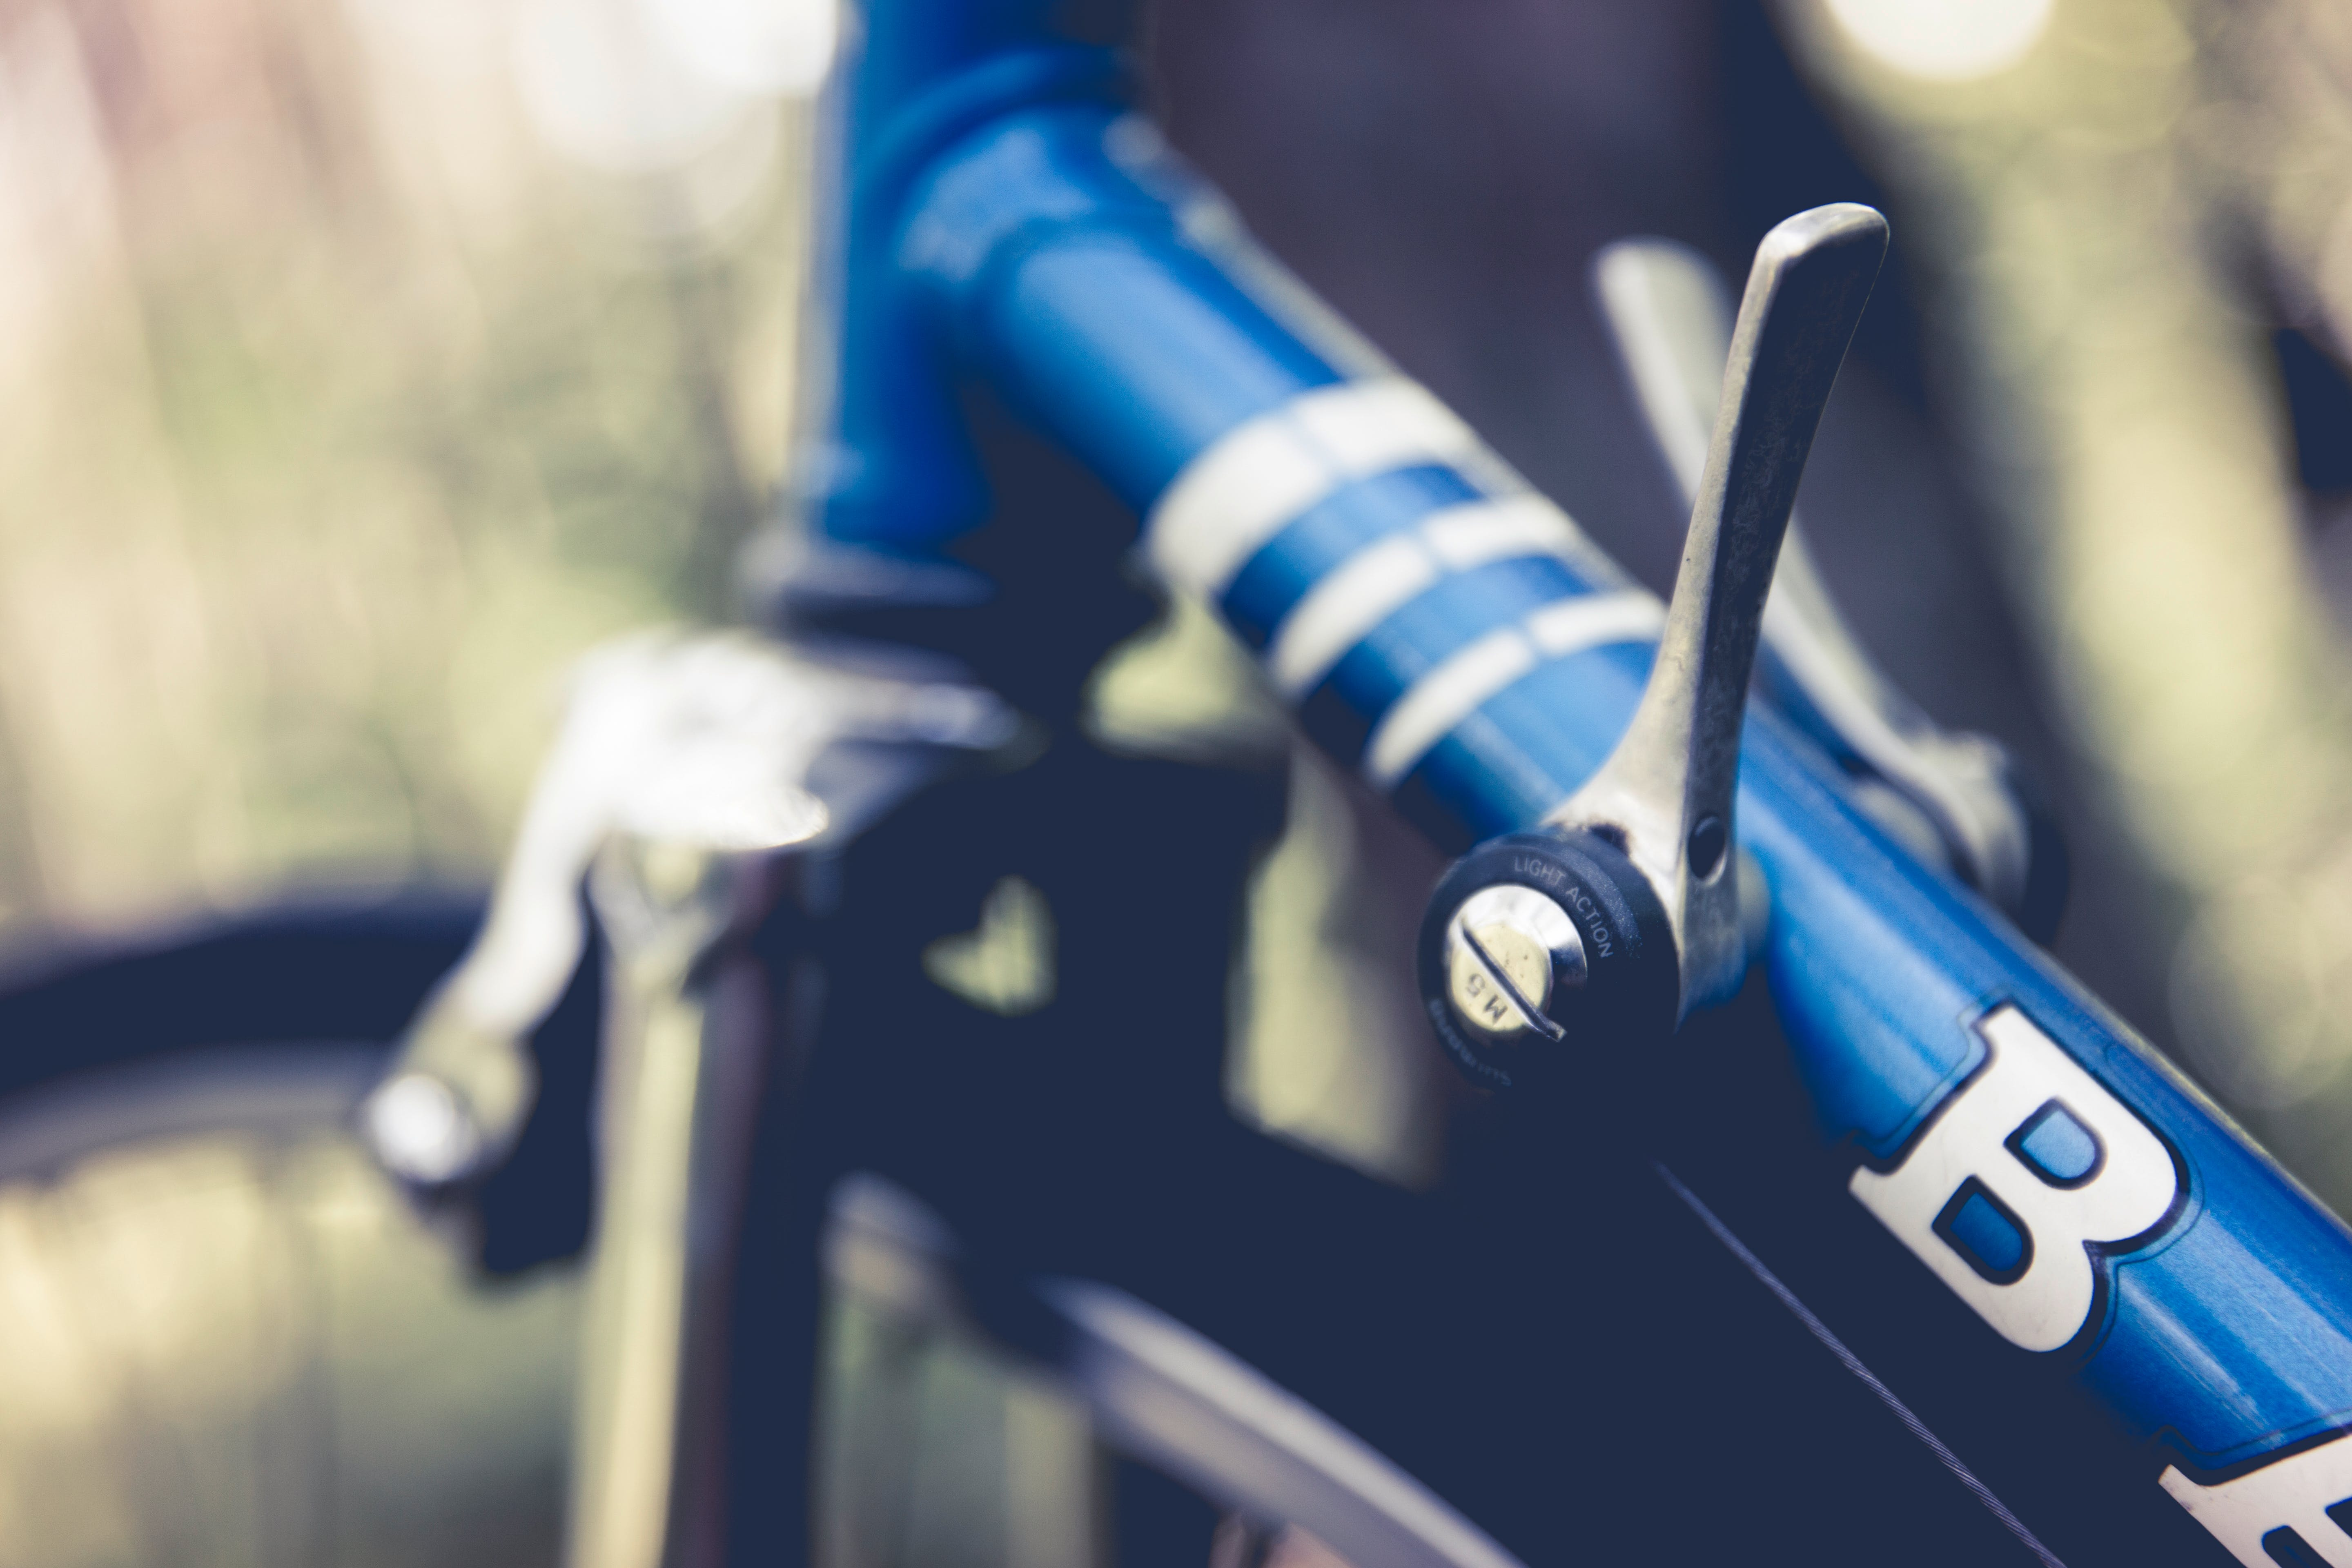 Blue Bicycle in Close Up Photography